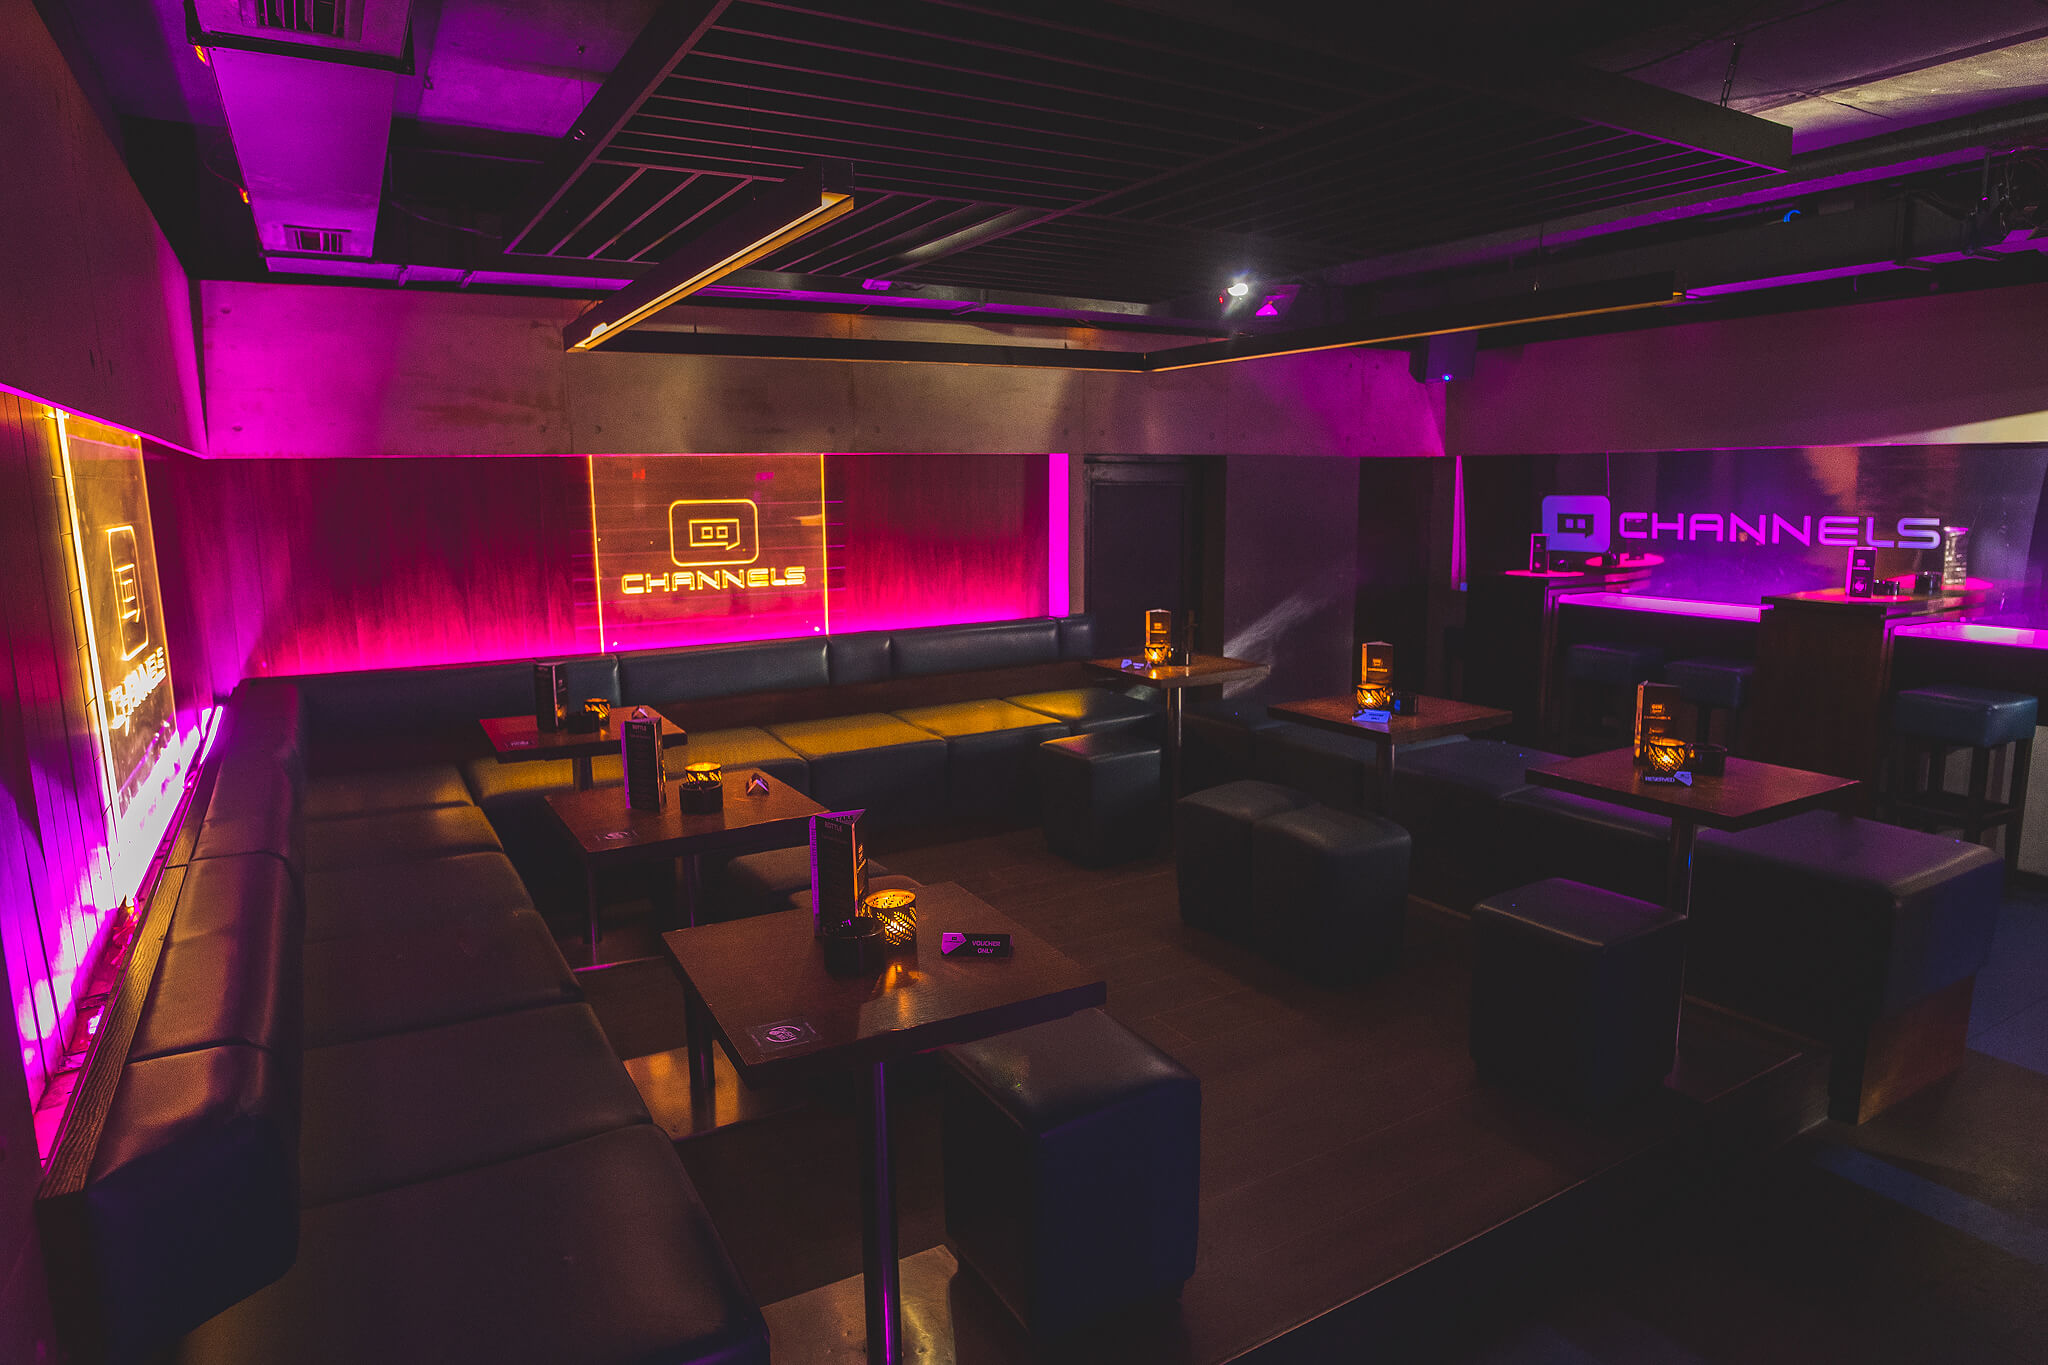 channels_club_interior14